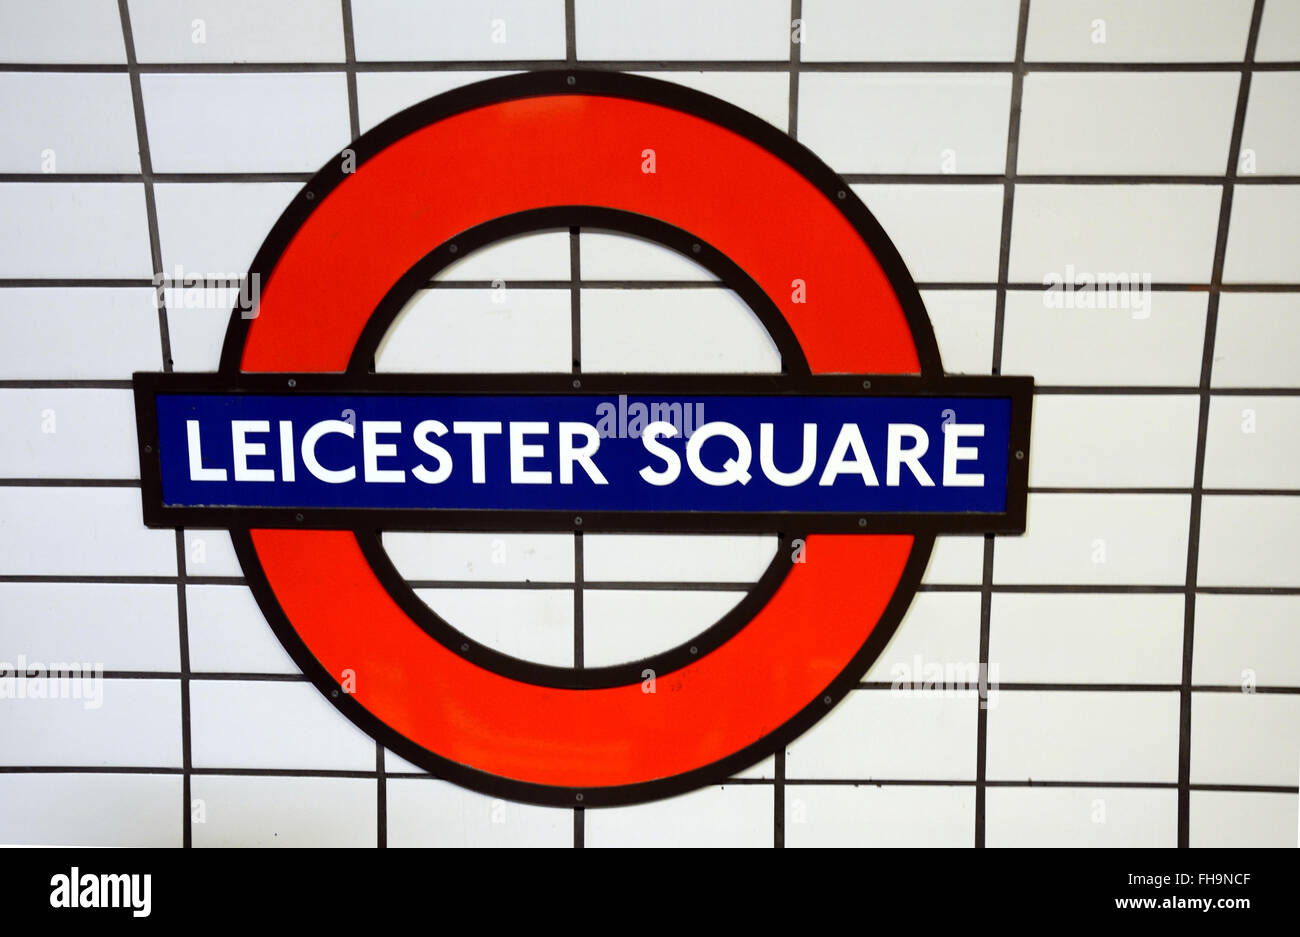 Leicester Square London Underground station name sign - Stock Image